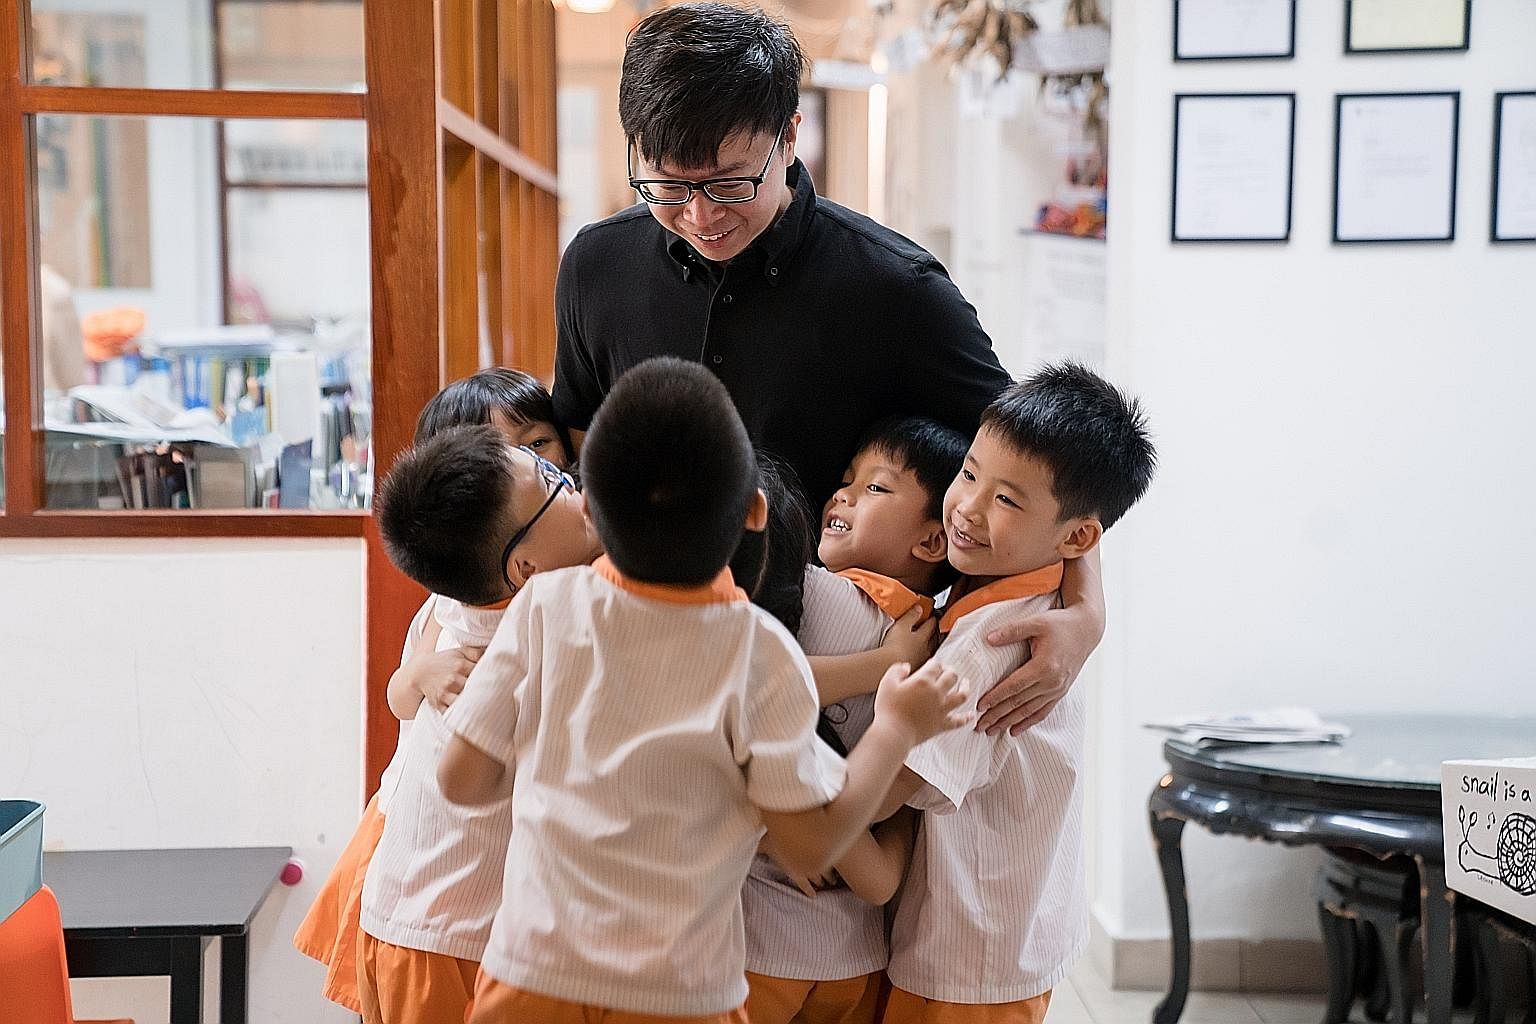 Singaporean conductor Wong Kah Chun with pupils from non-profit education centre Child at Street 11, as part of Project Infinitude, which aims to enrich the children's lives with music.